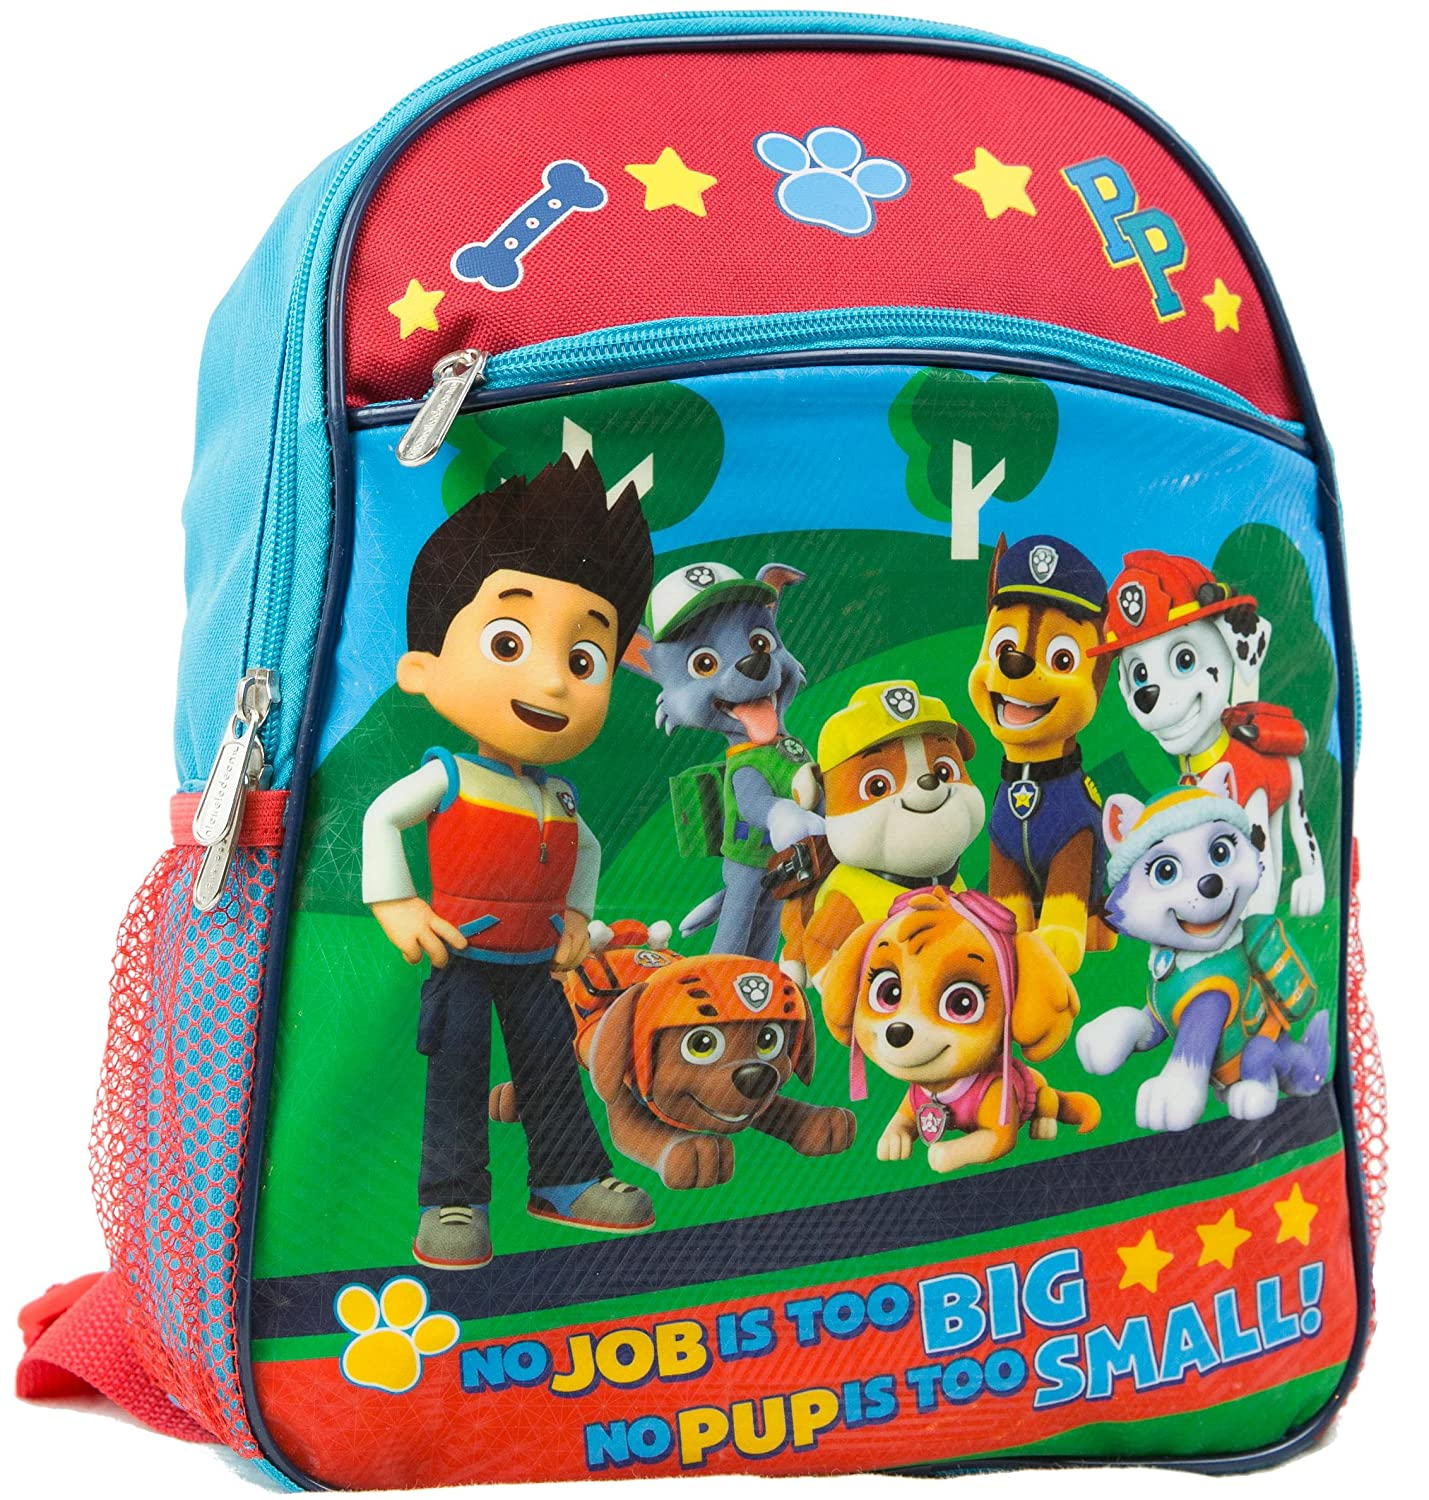 Nickelodeon Paw Patrol 12 Toddler Backpack With 8 Paw Patrol Characters Pictured On Front Nick Jr